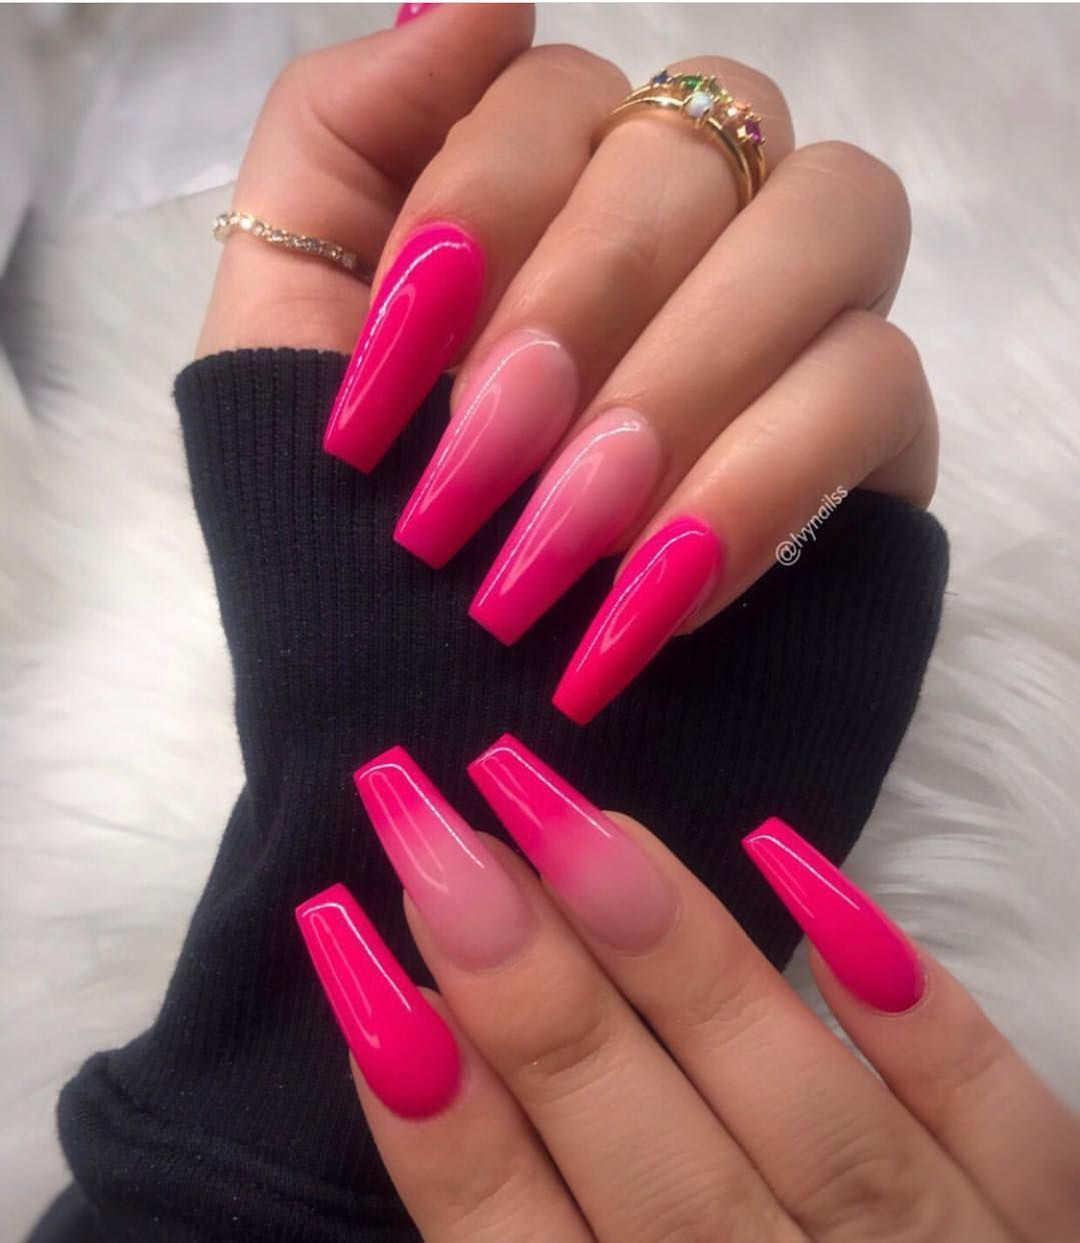 Credit @ivynailss 💕 #clawaddicts #nails #claws # ...